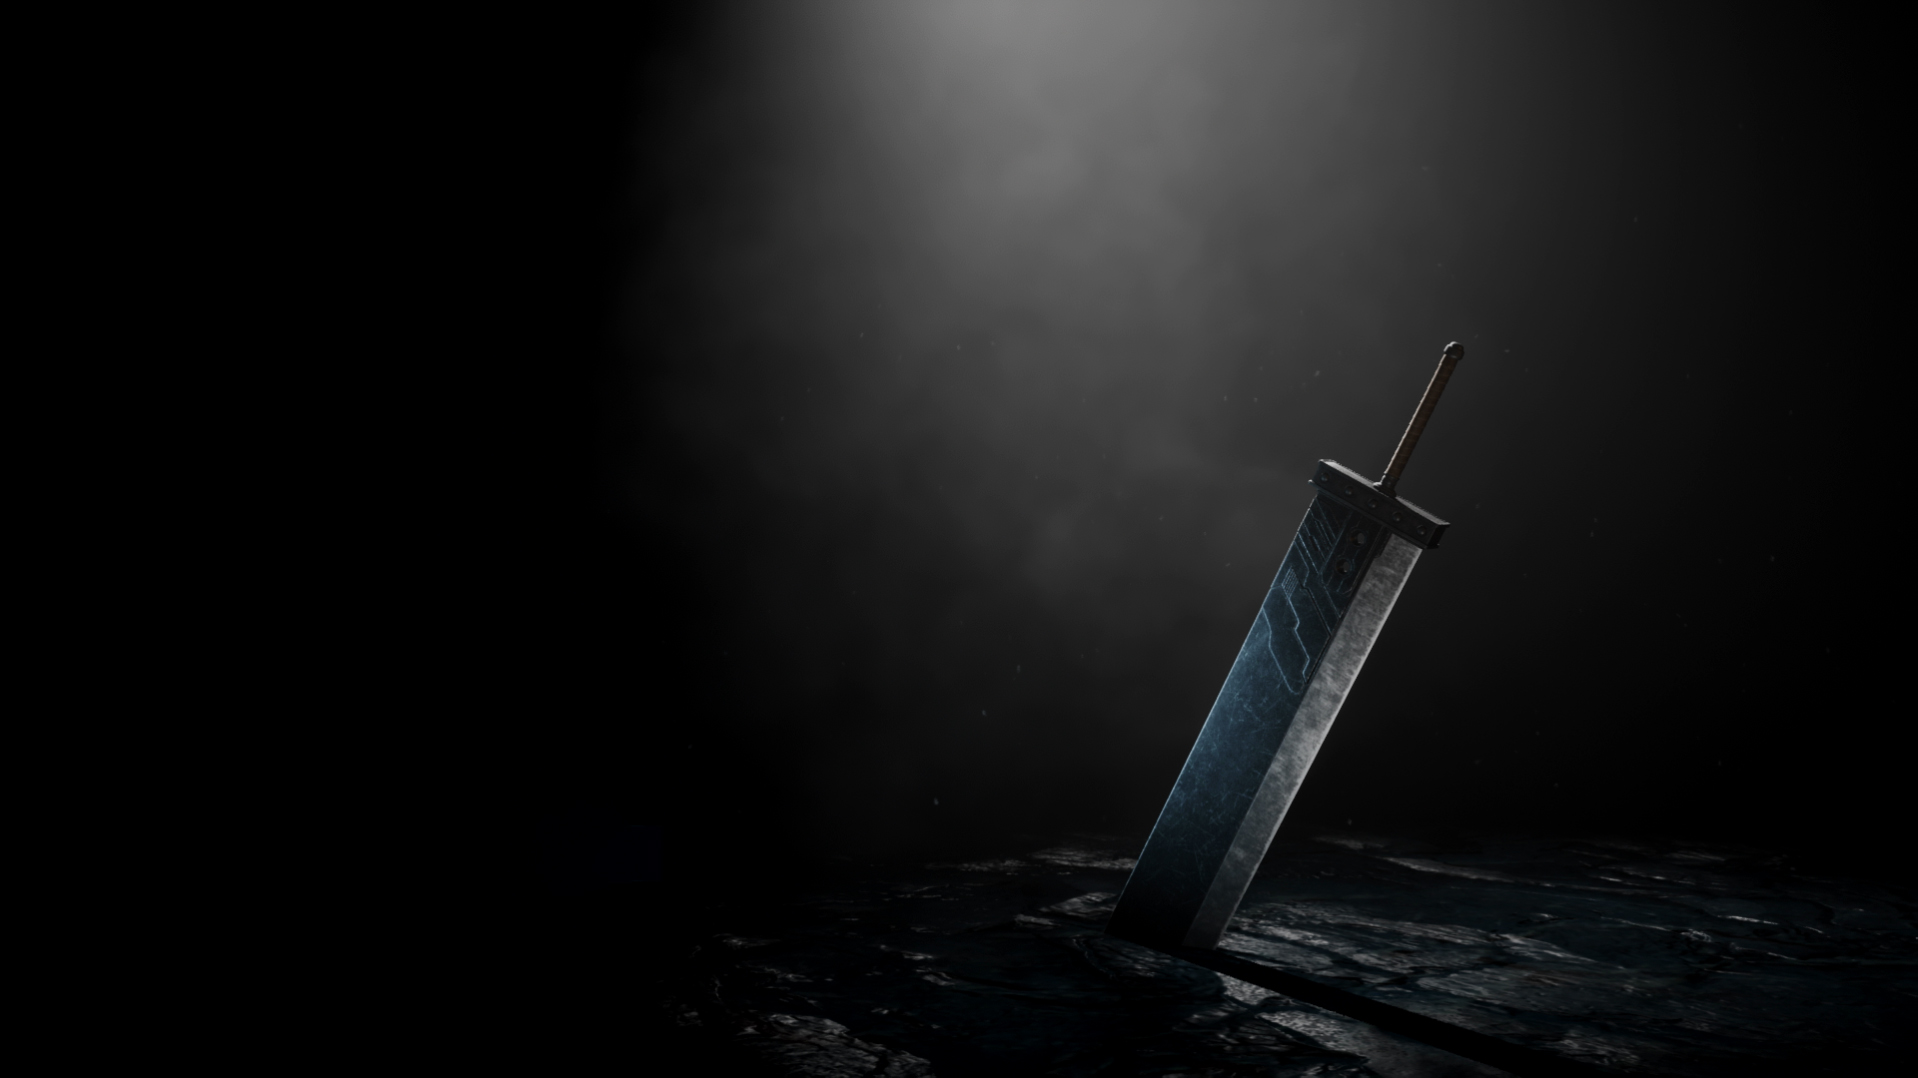 The Buster Sword sits upright with a spotlight hitting it in darkness